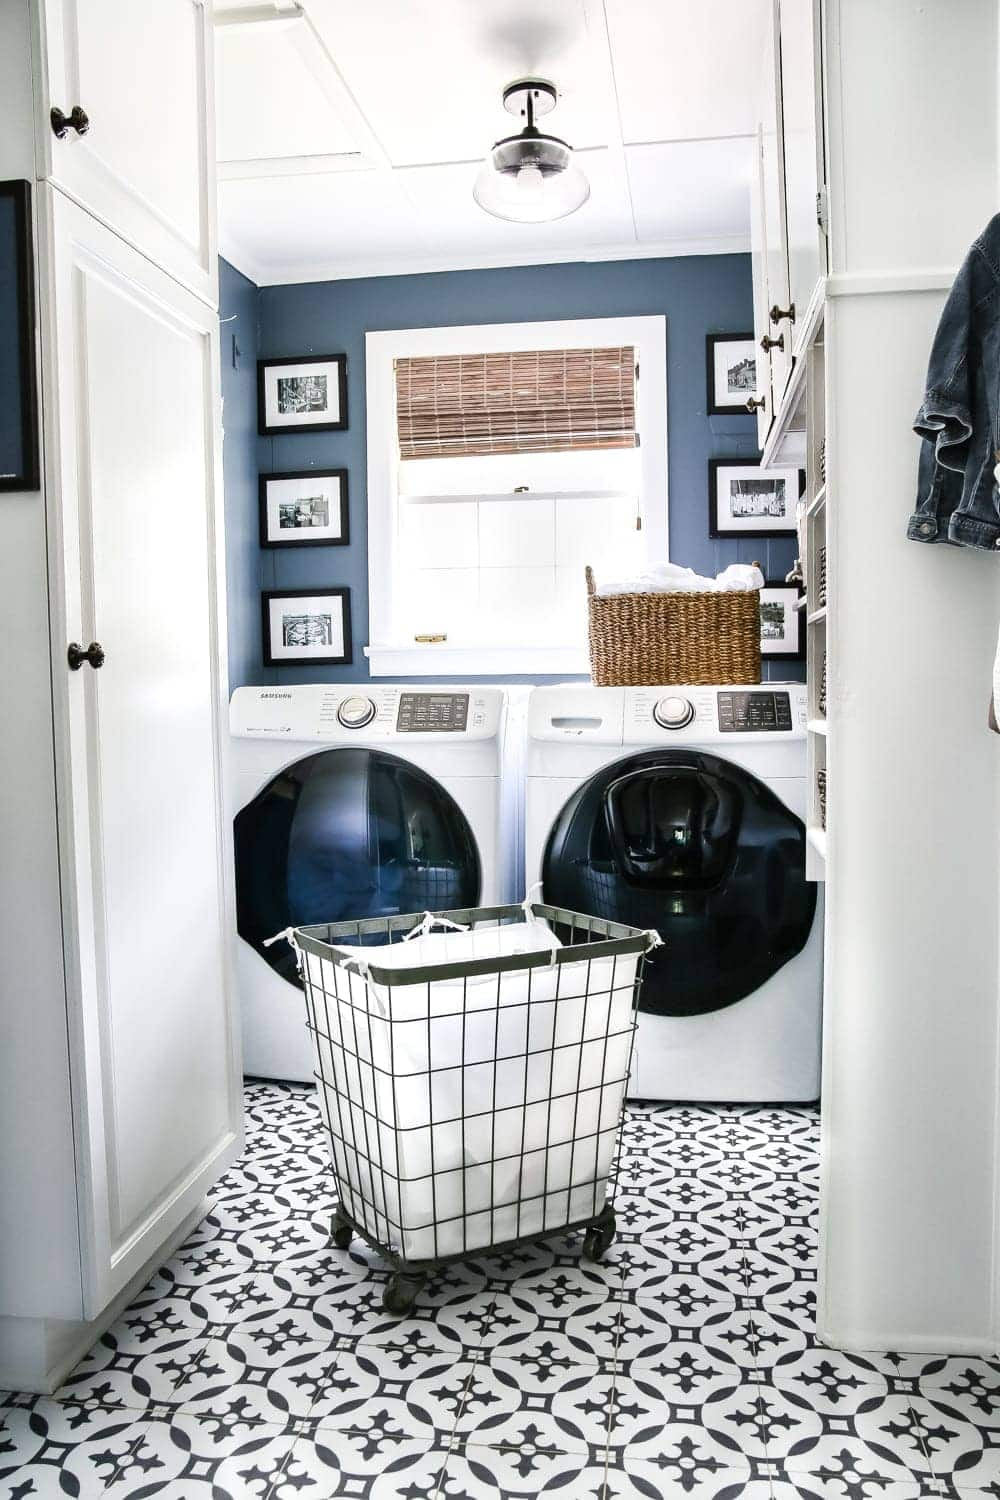 Pictures Of Laundry Rooms High Contrast Laundry Room Makeover Reveal - Bless'er House